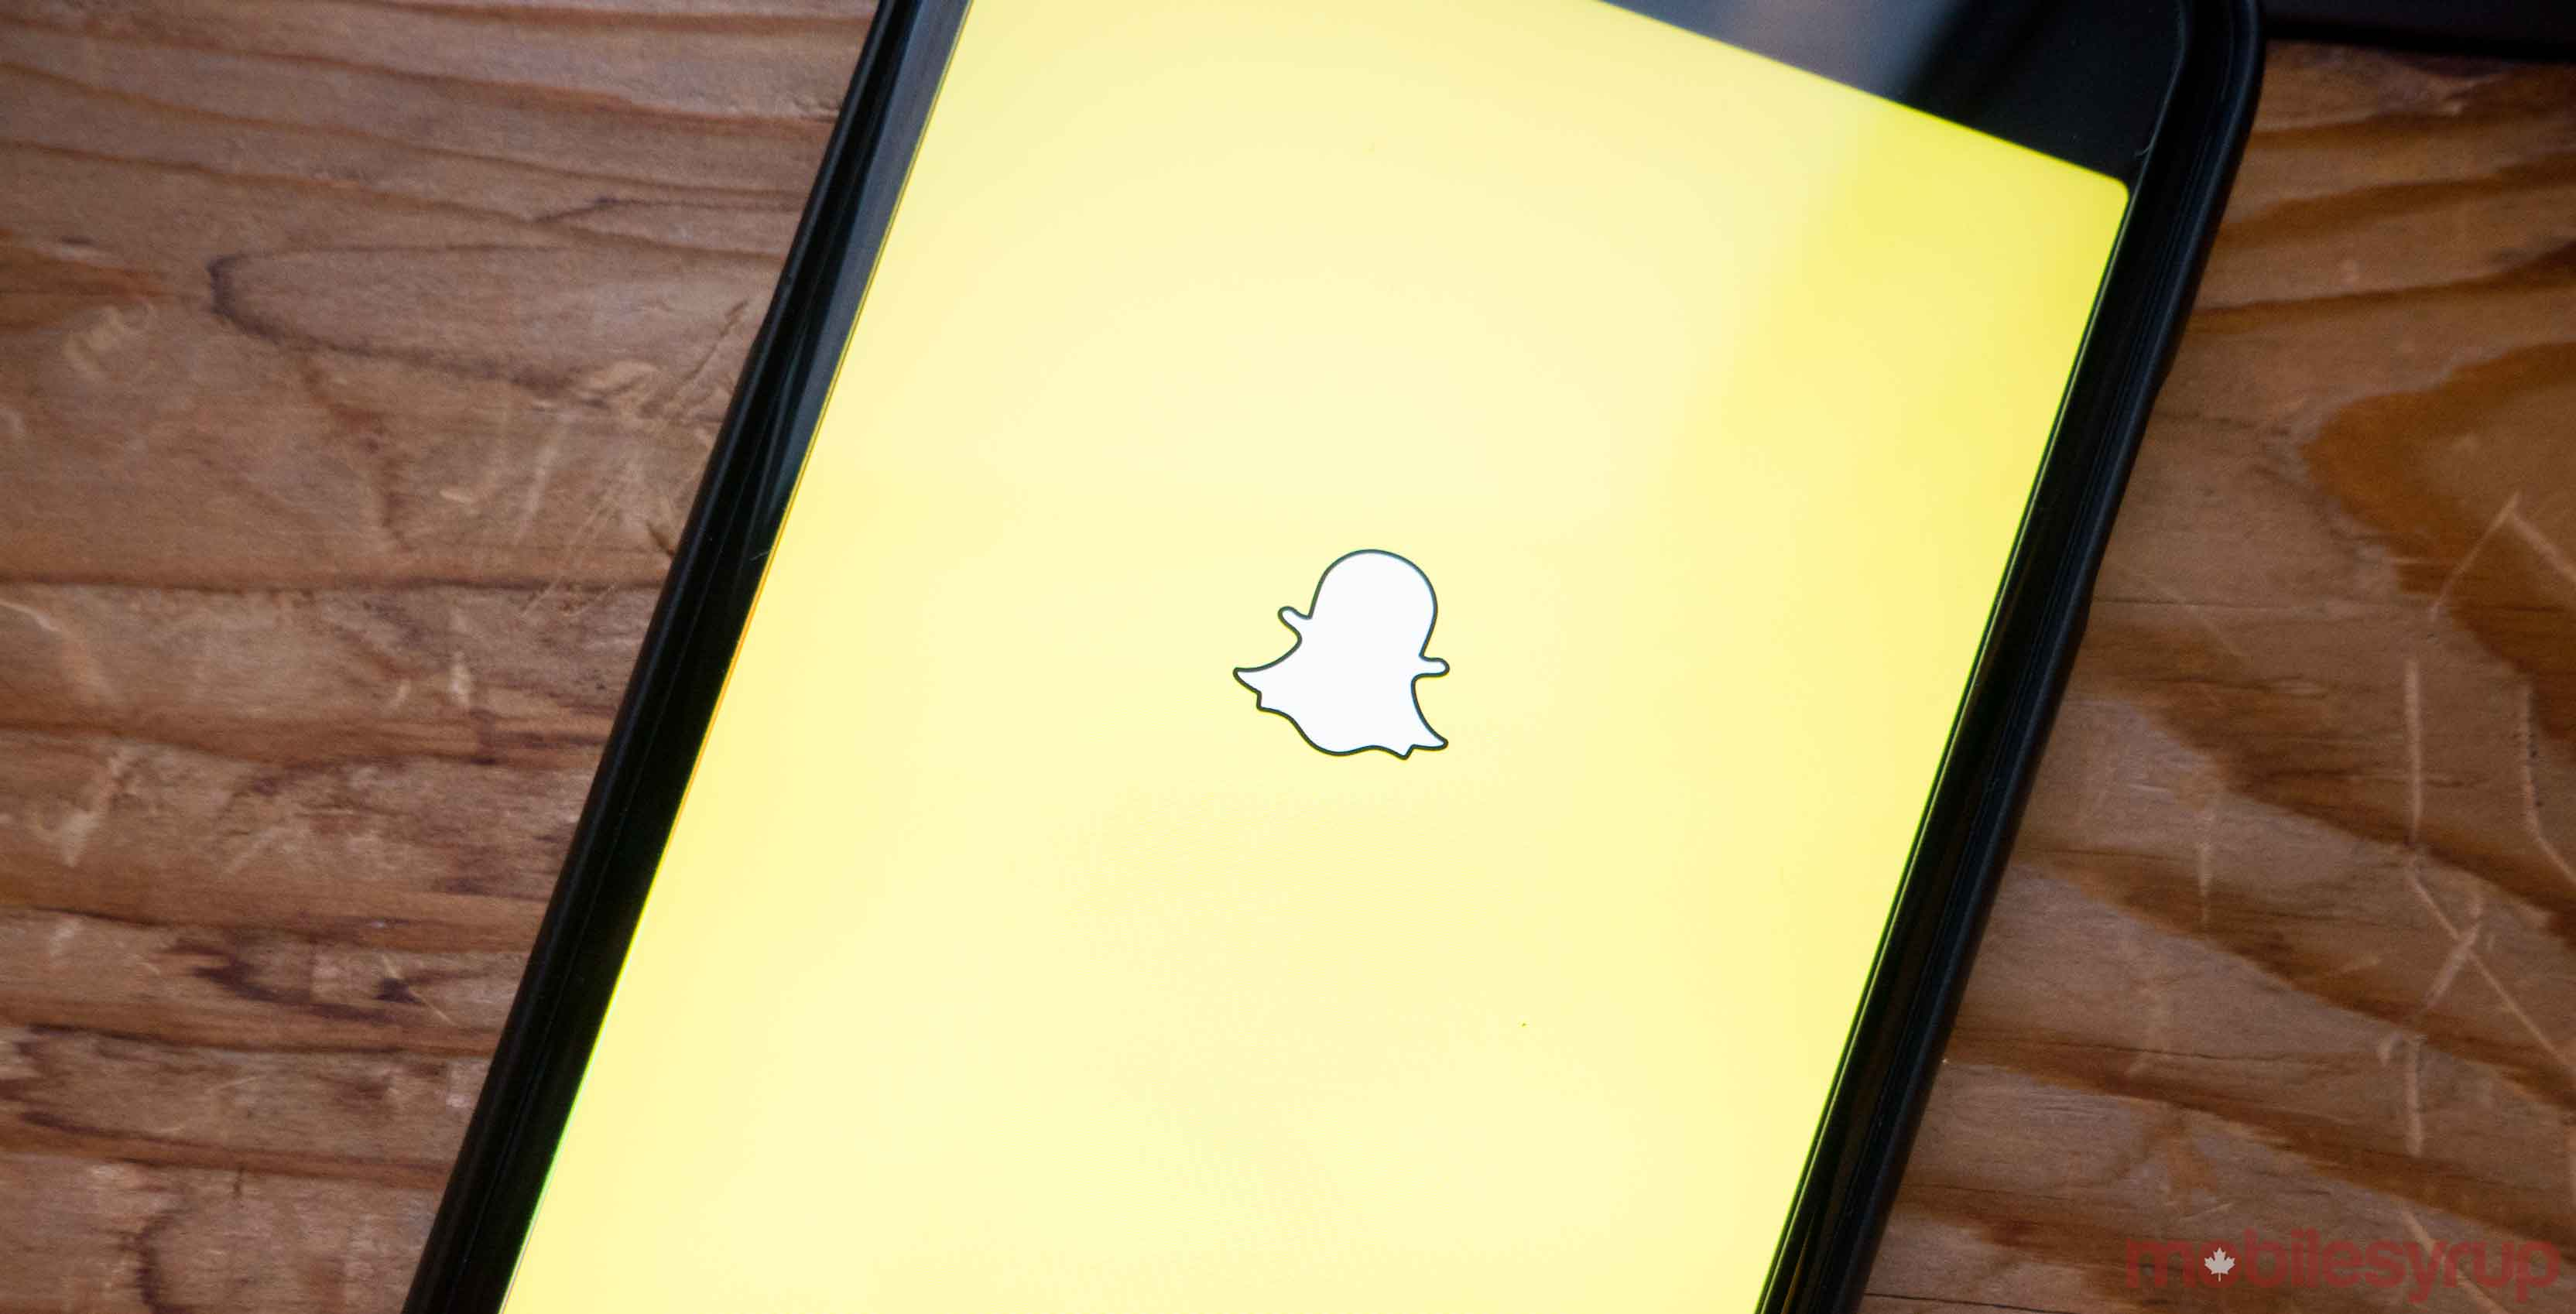 Snapchat unveils gif stickers and tabs in upcoming new update